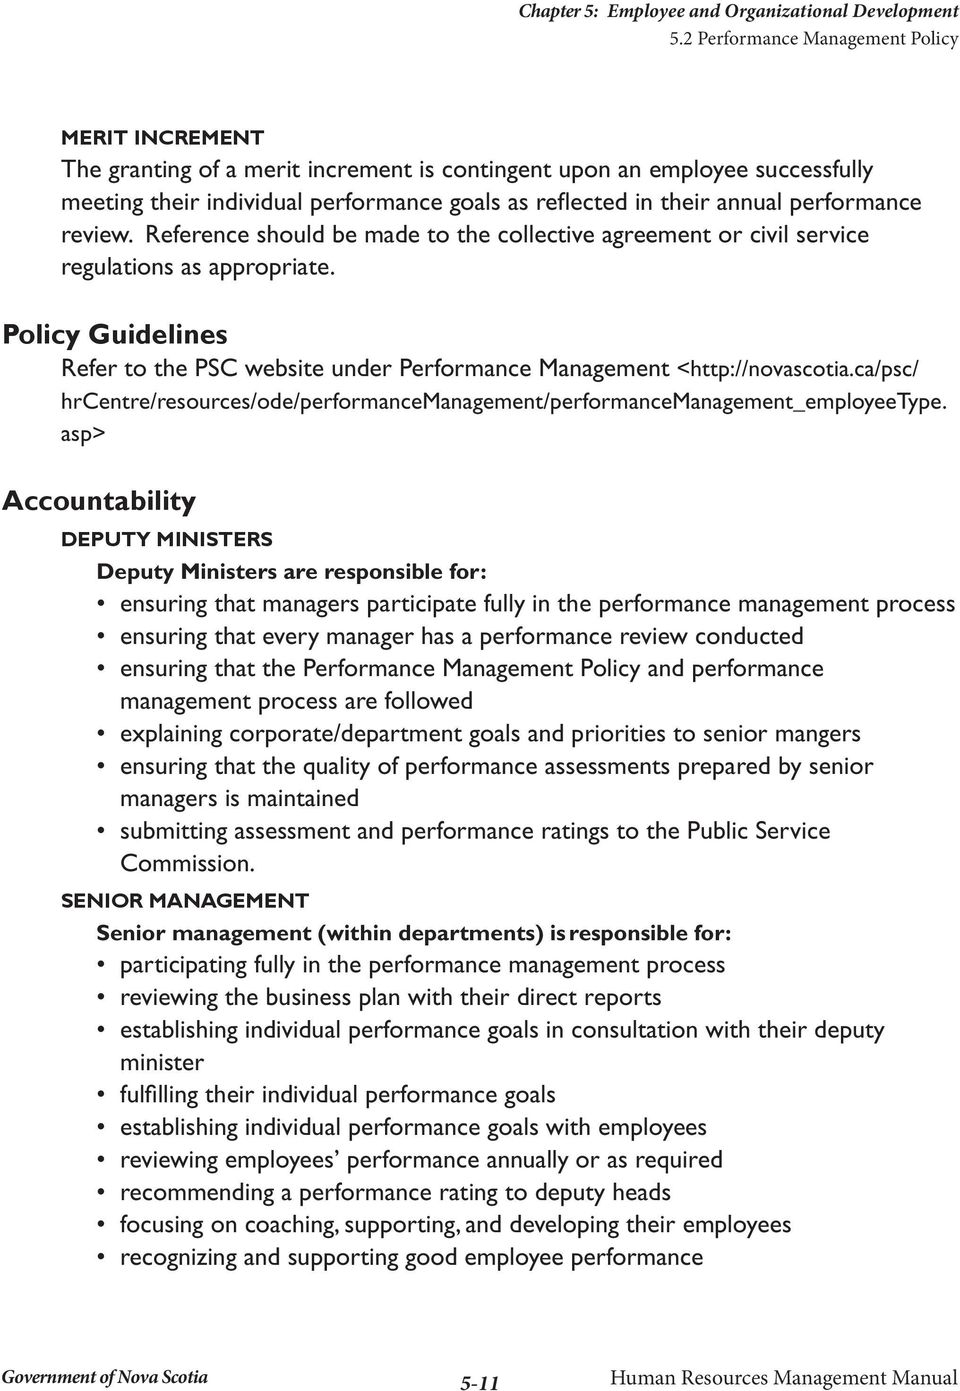 ca/psc/ hrcentre/resources/ode/performancemanagement/performancemanagement_employeetype.